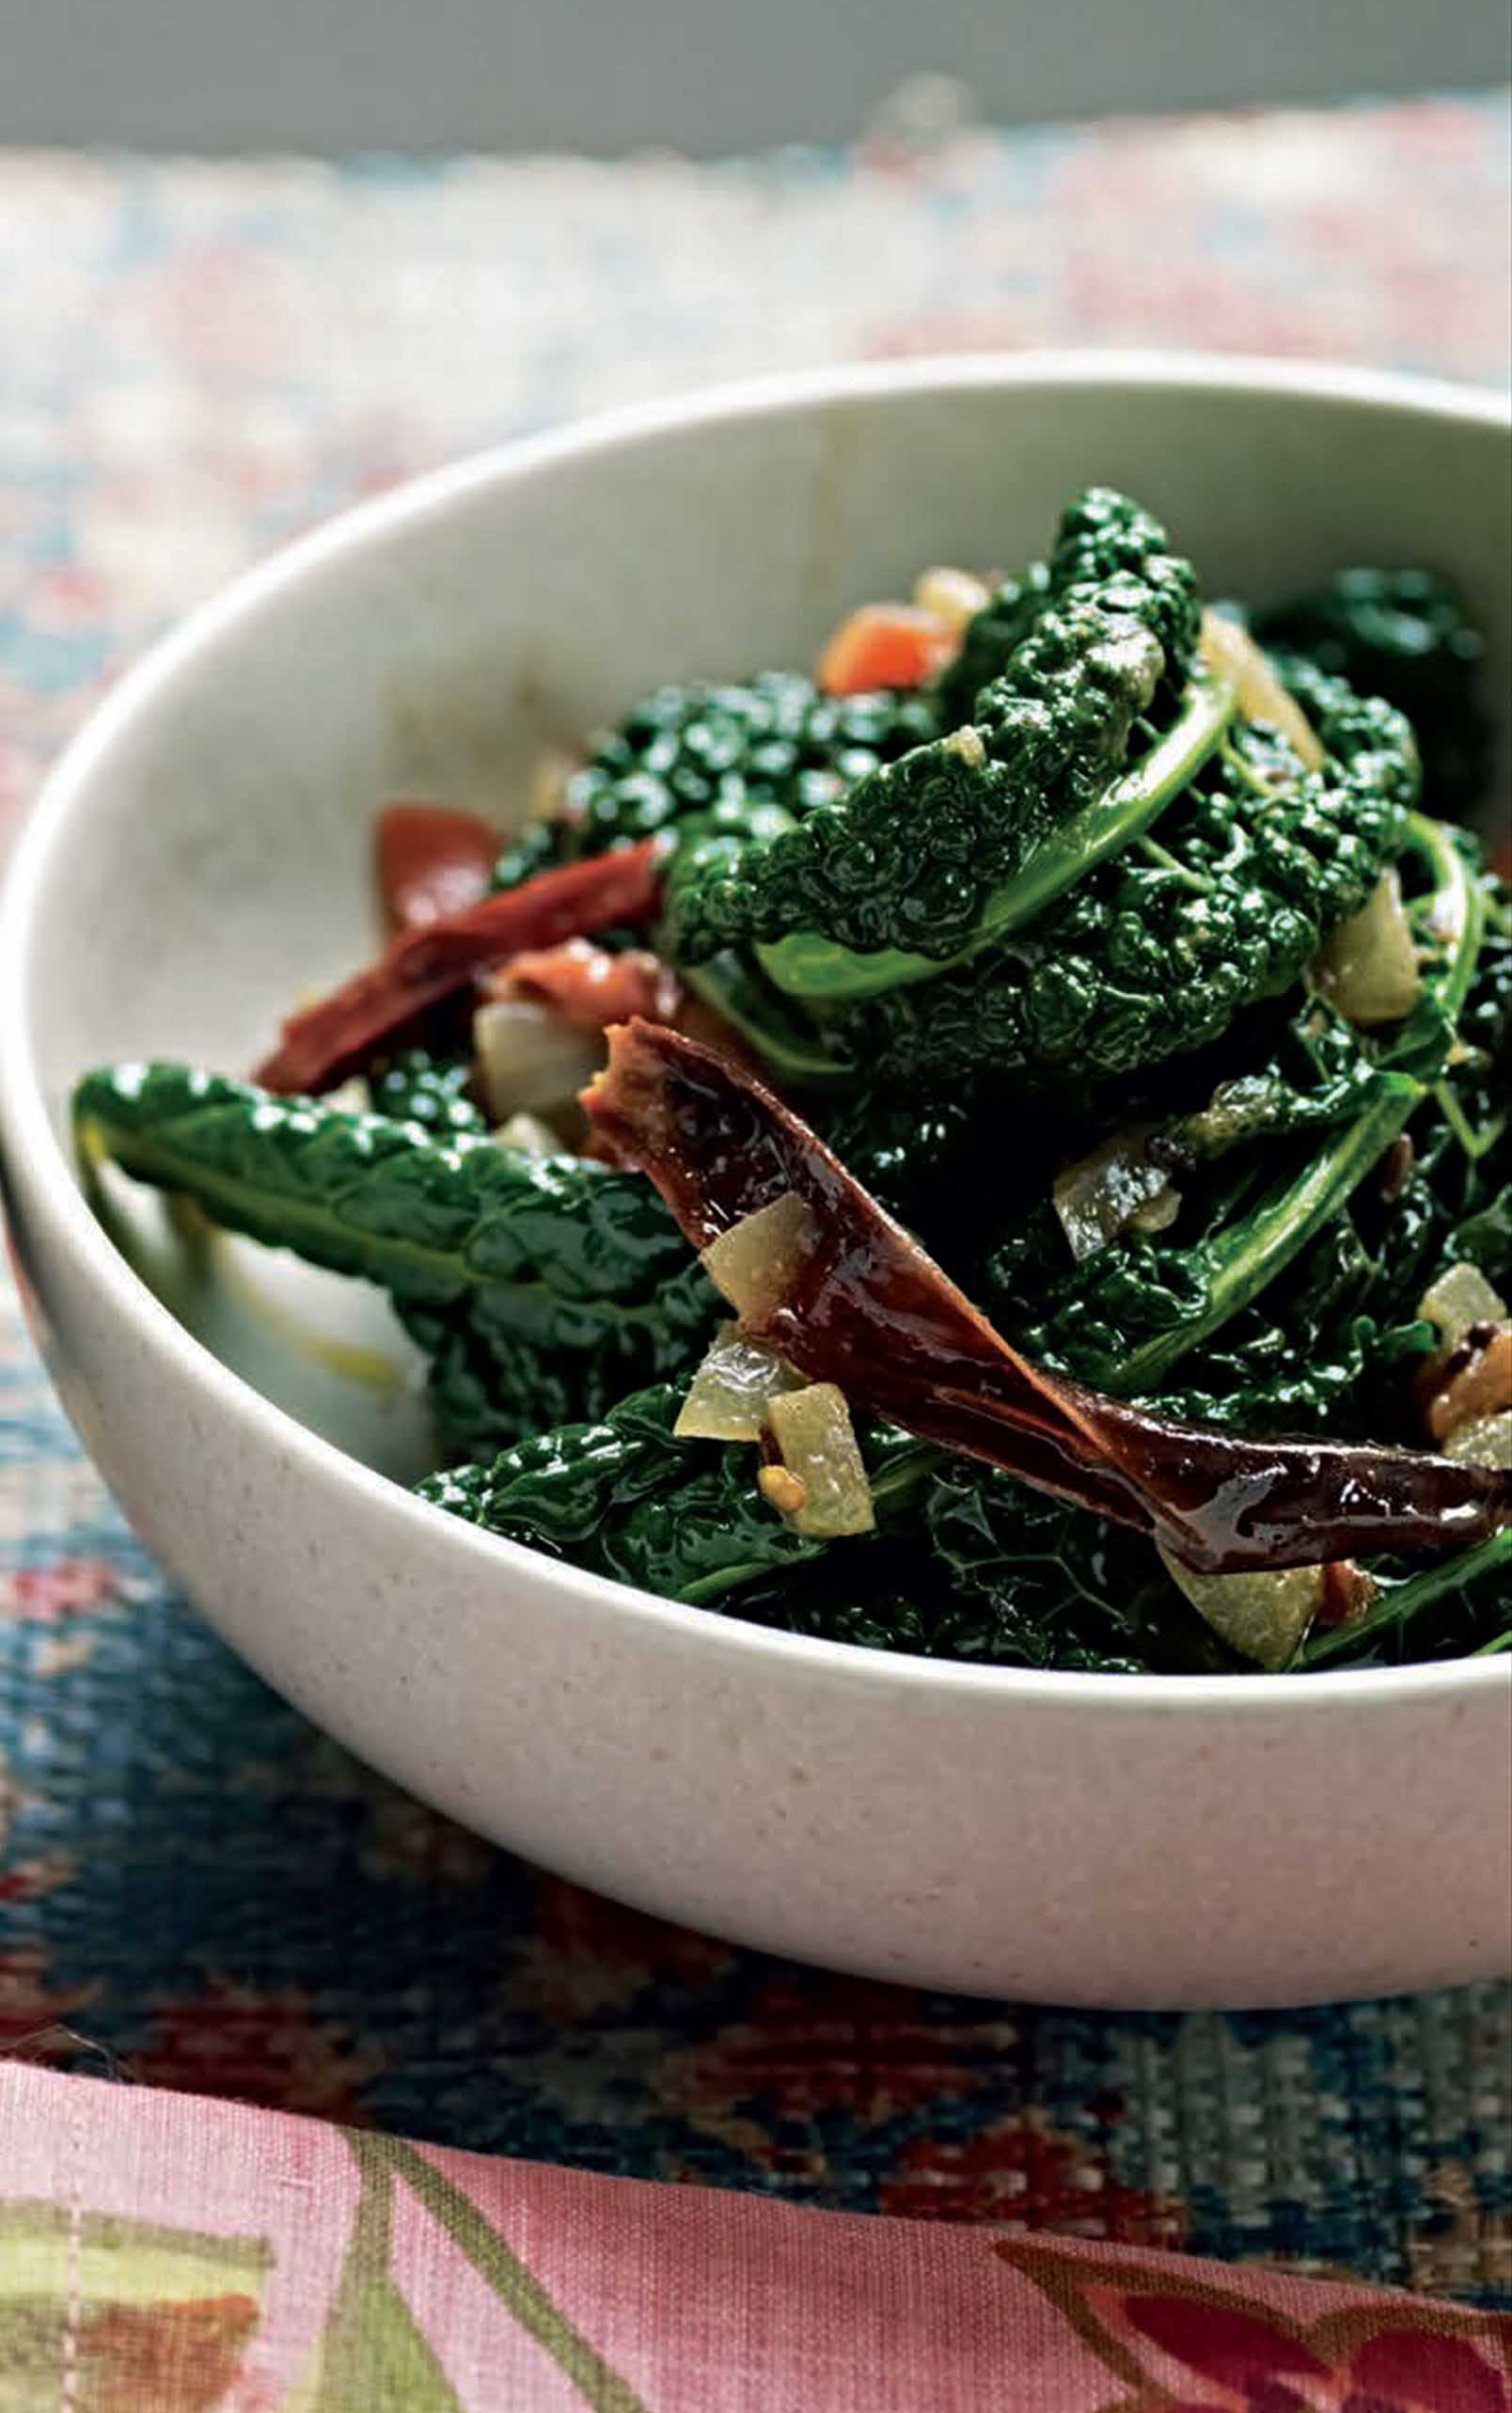 Spiced steam-cooked cavolo nero